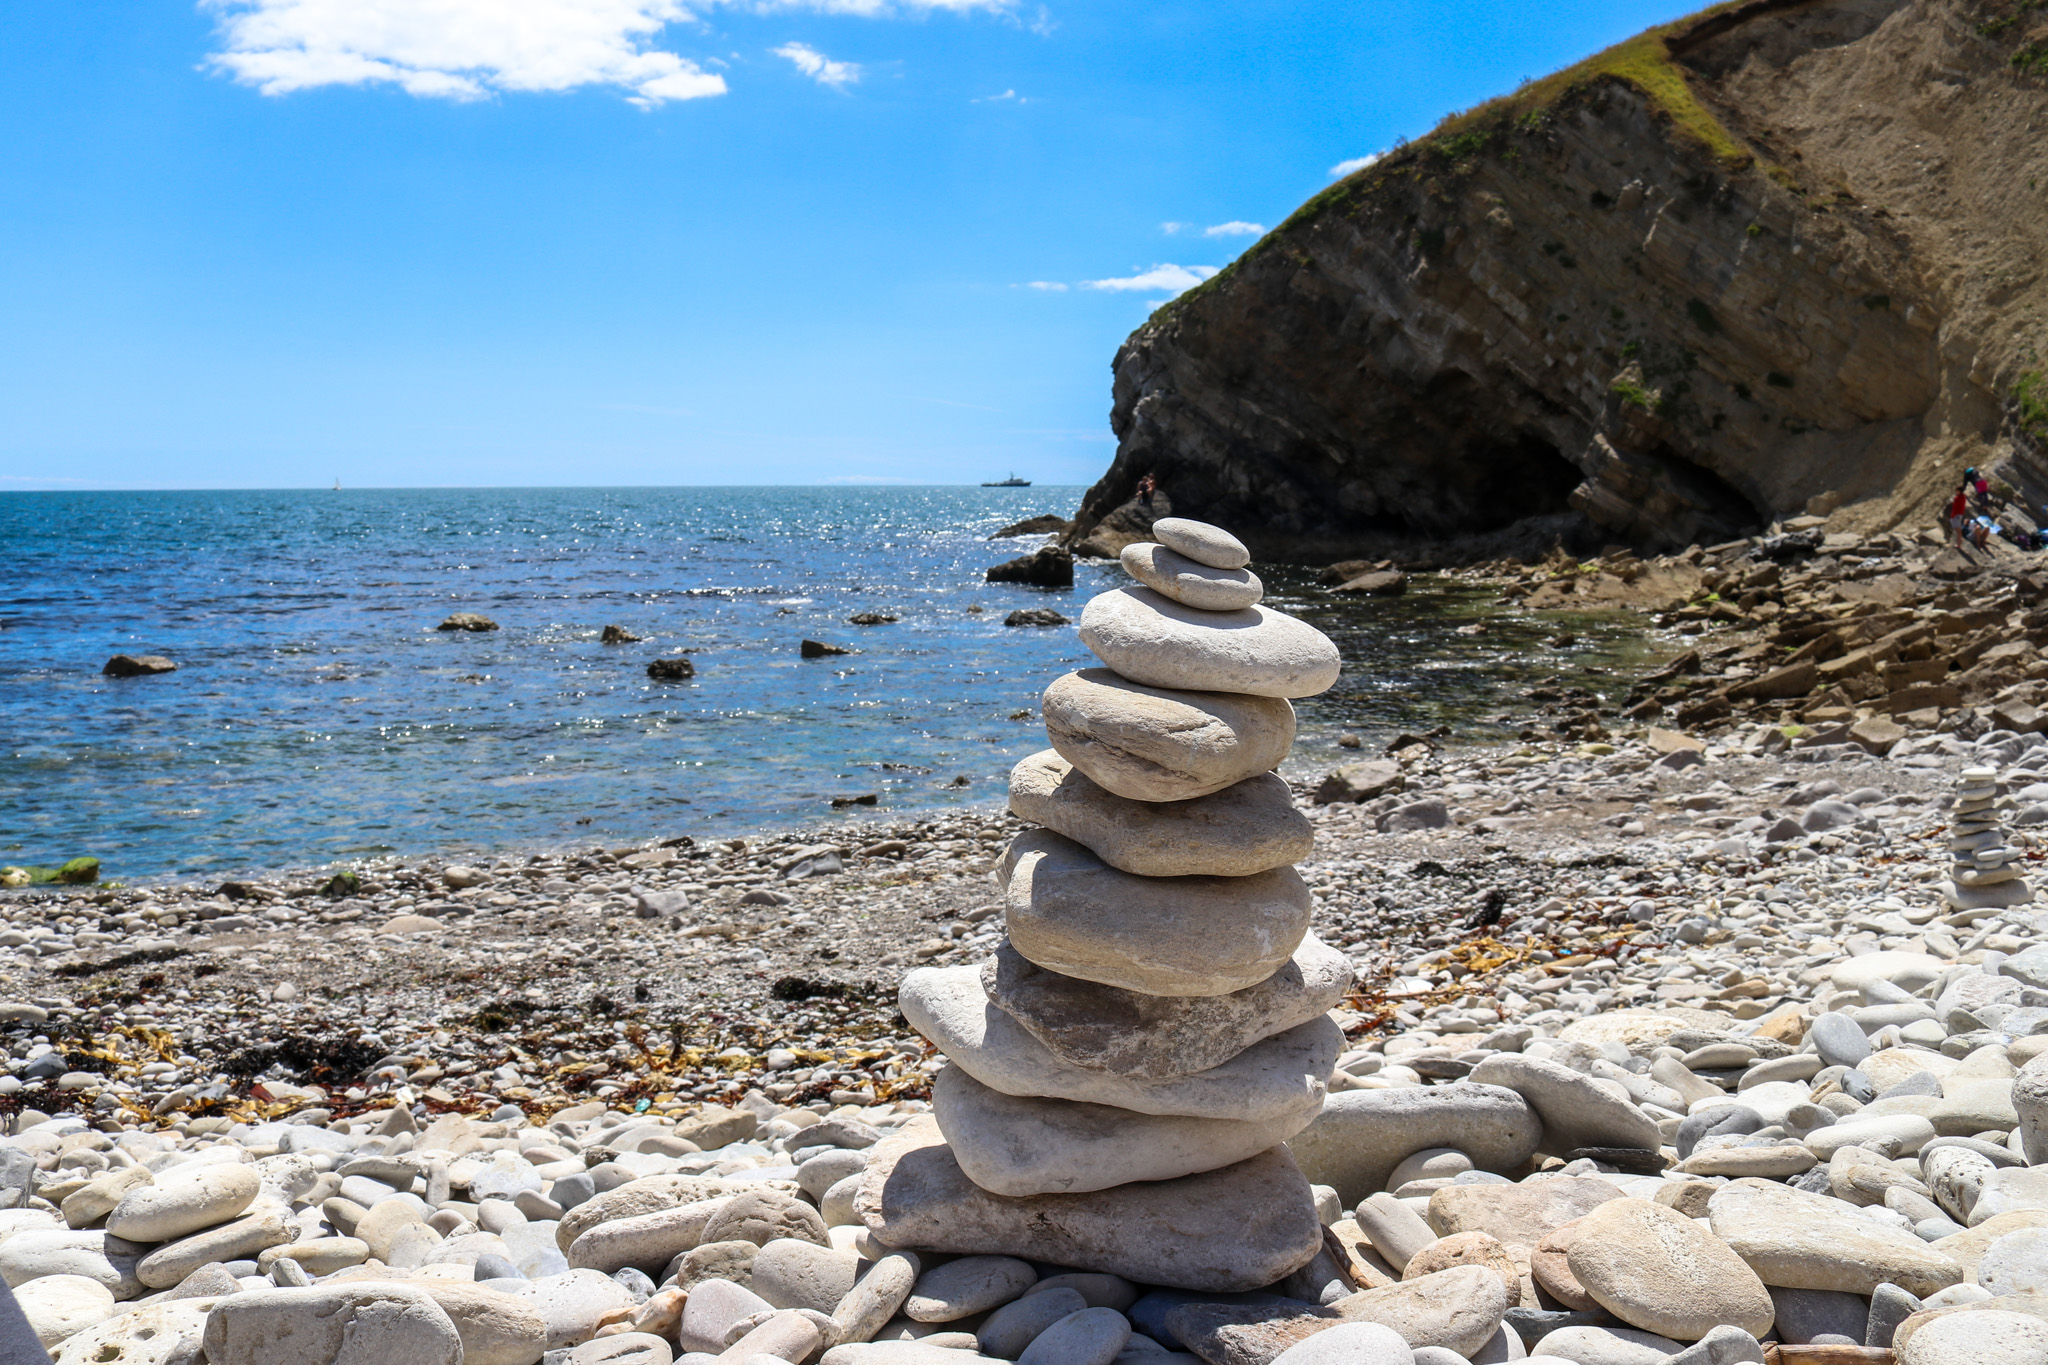 Rock sculpture on Worbarrow Bay beach